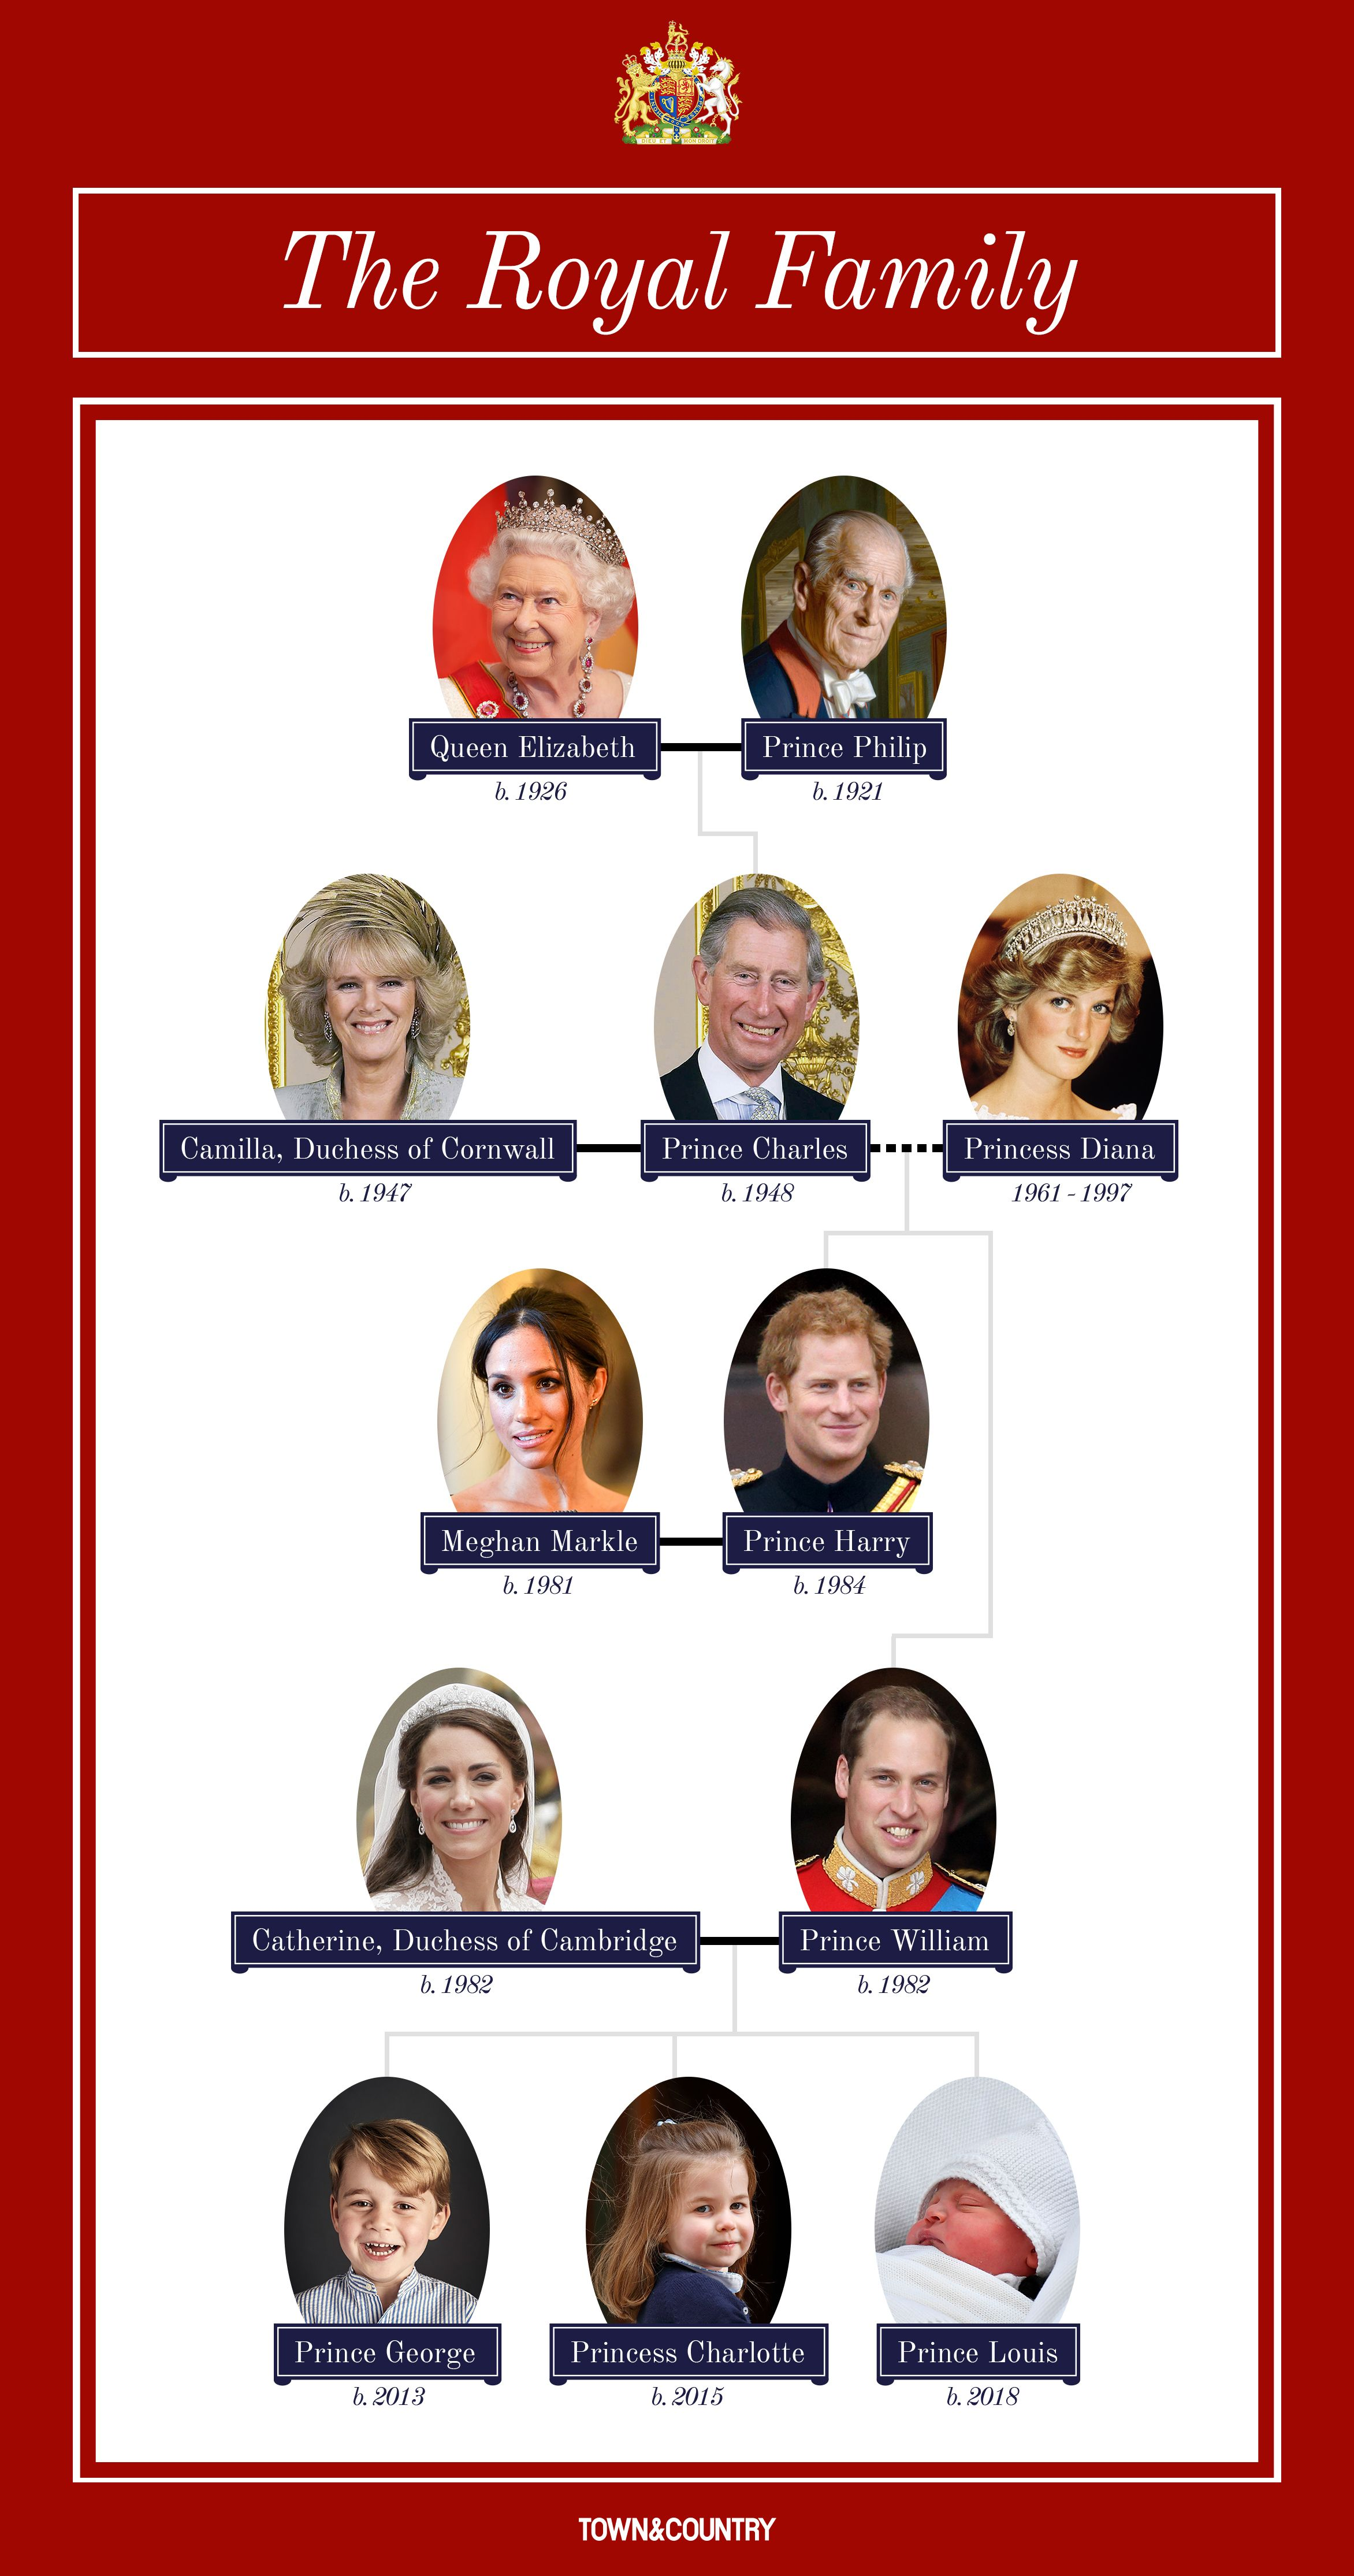 British Royal Family Tree - Guide to Queen Elizabeth II ...